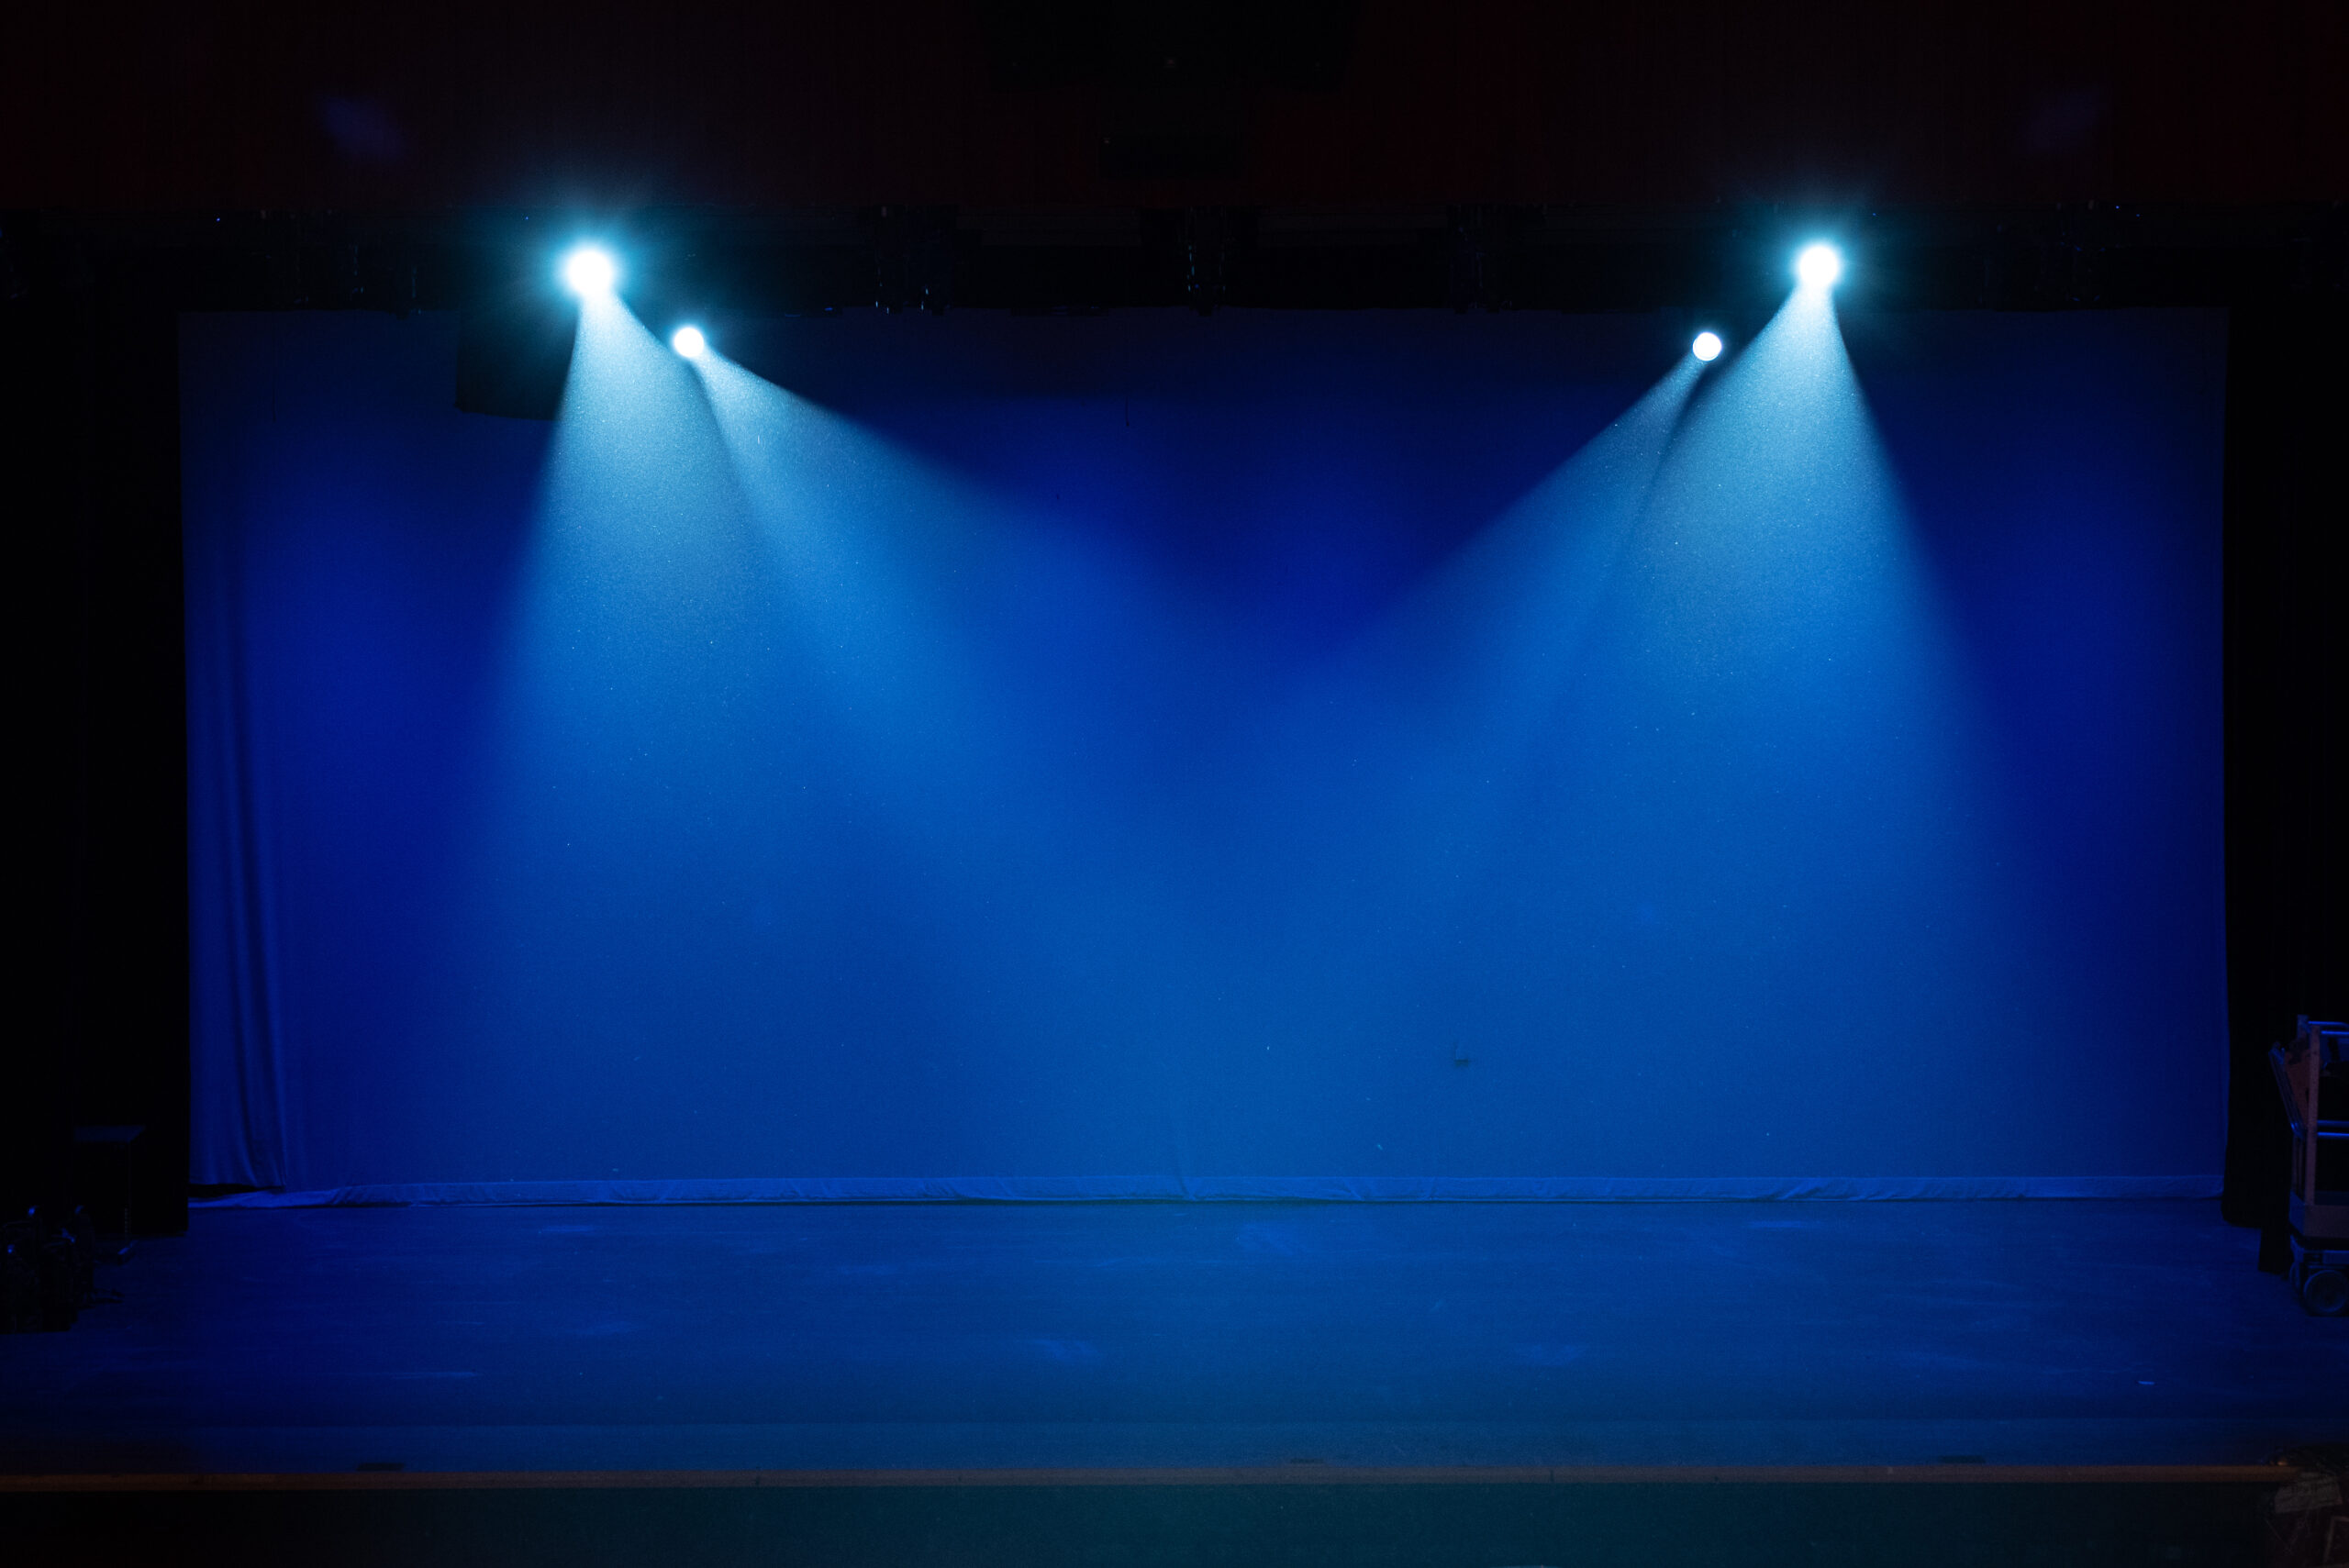 4 spotlights and blue backlight on the stage